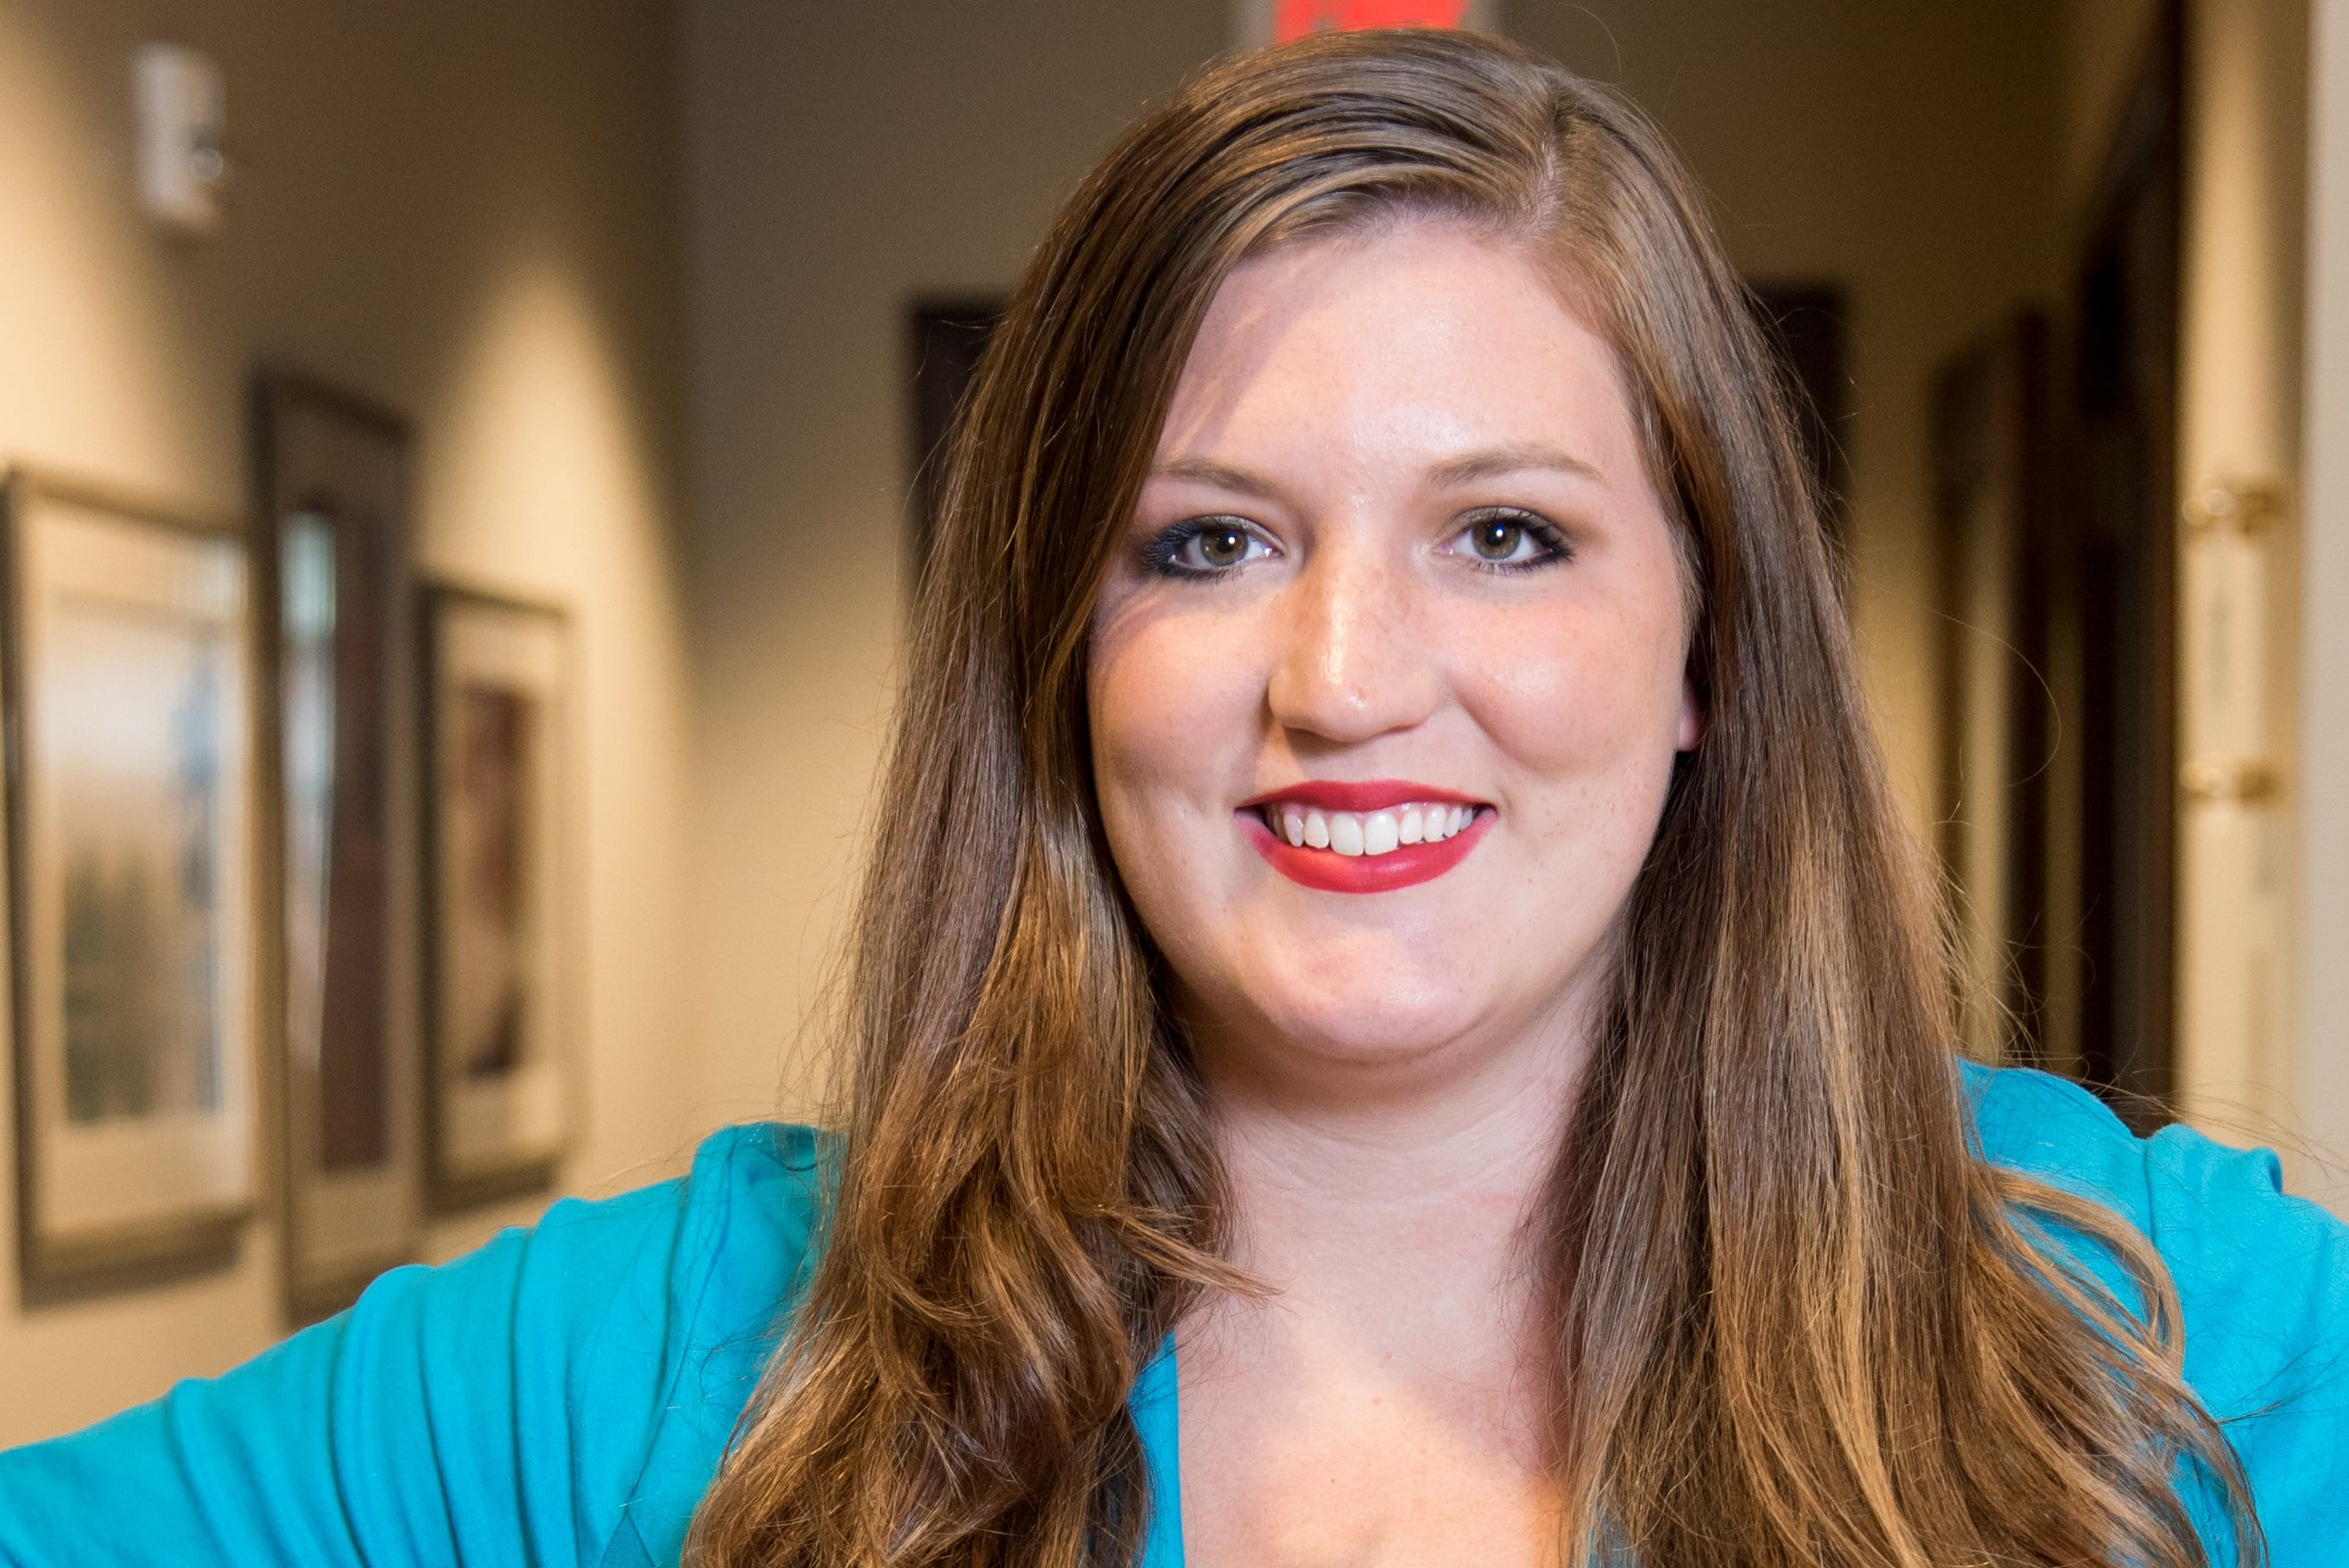 Taylor is the Jack-of-all-Trades: Colton Groome's utility player. Whether insurance, investment details, or internal operations, she's the behind-the-scenes guru of processes.